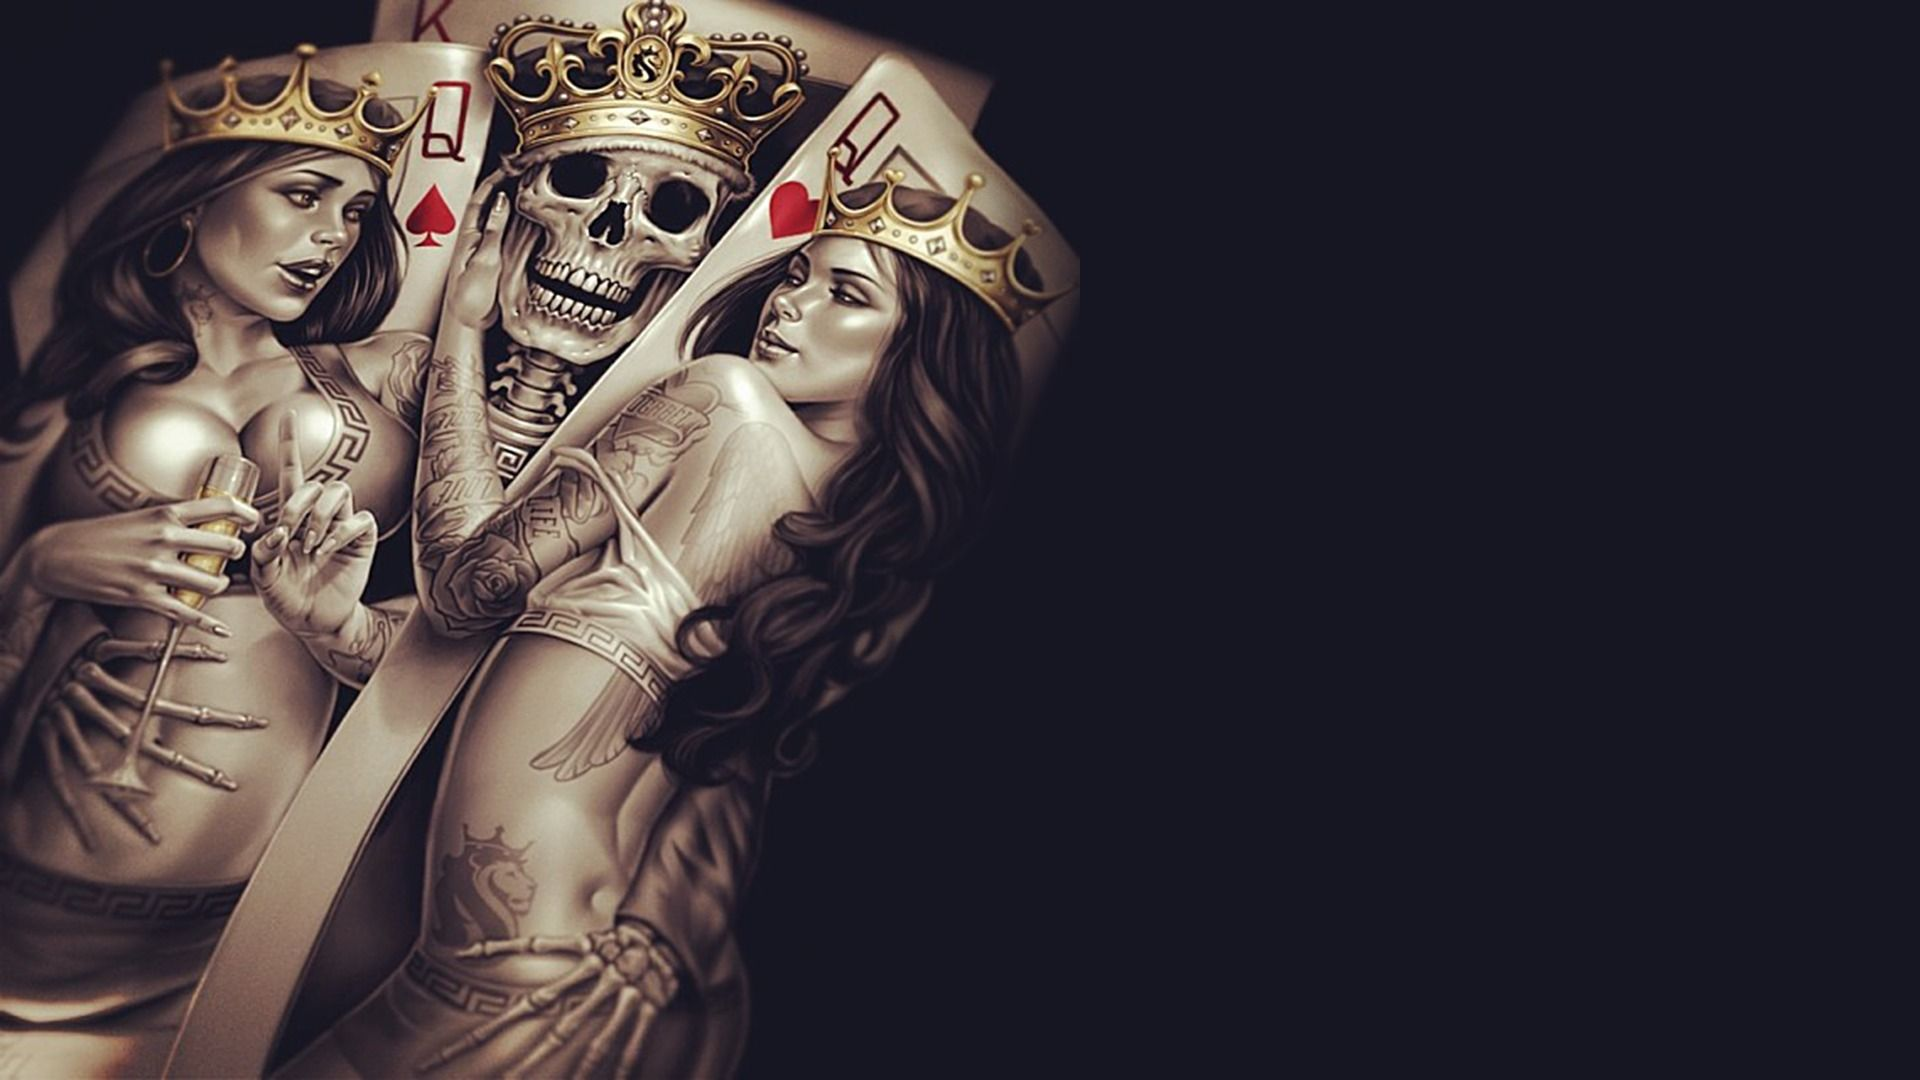 Wallpaper King Queen Crown Poker Tattoos Skull Bones Skeleton Cup Wallpapers Miscellanea Download Skull Wallpaper Inked Girls Digital Wallpaper